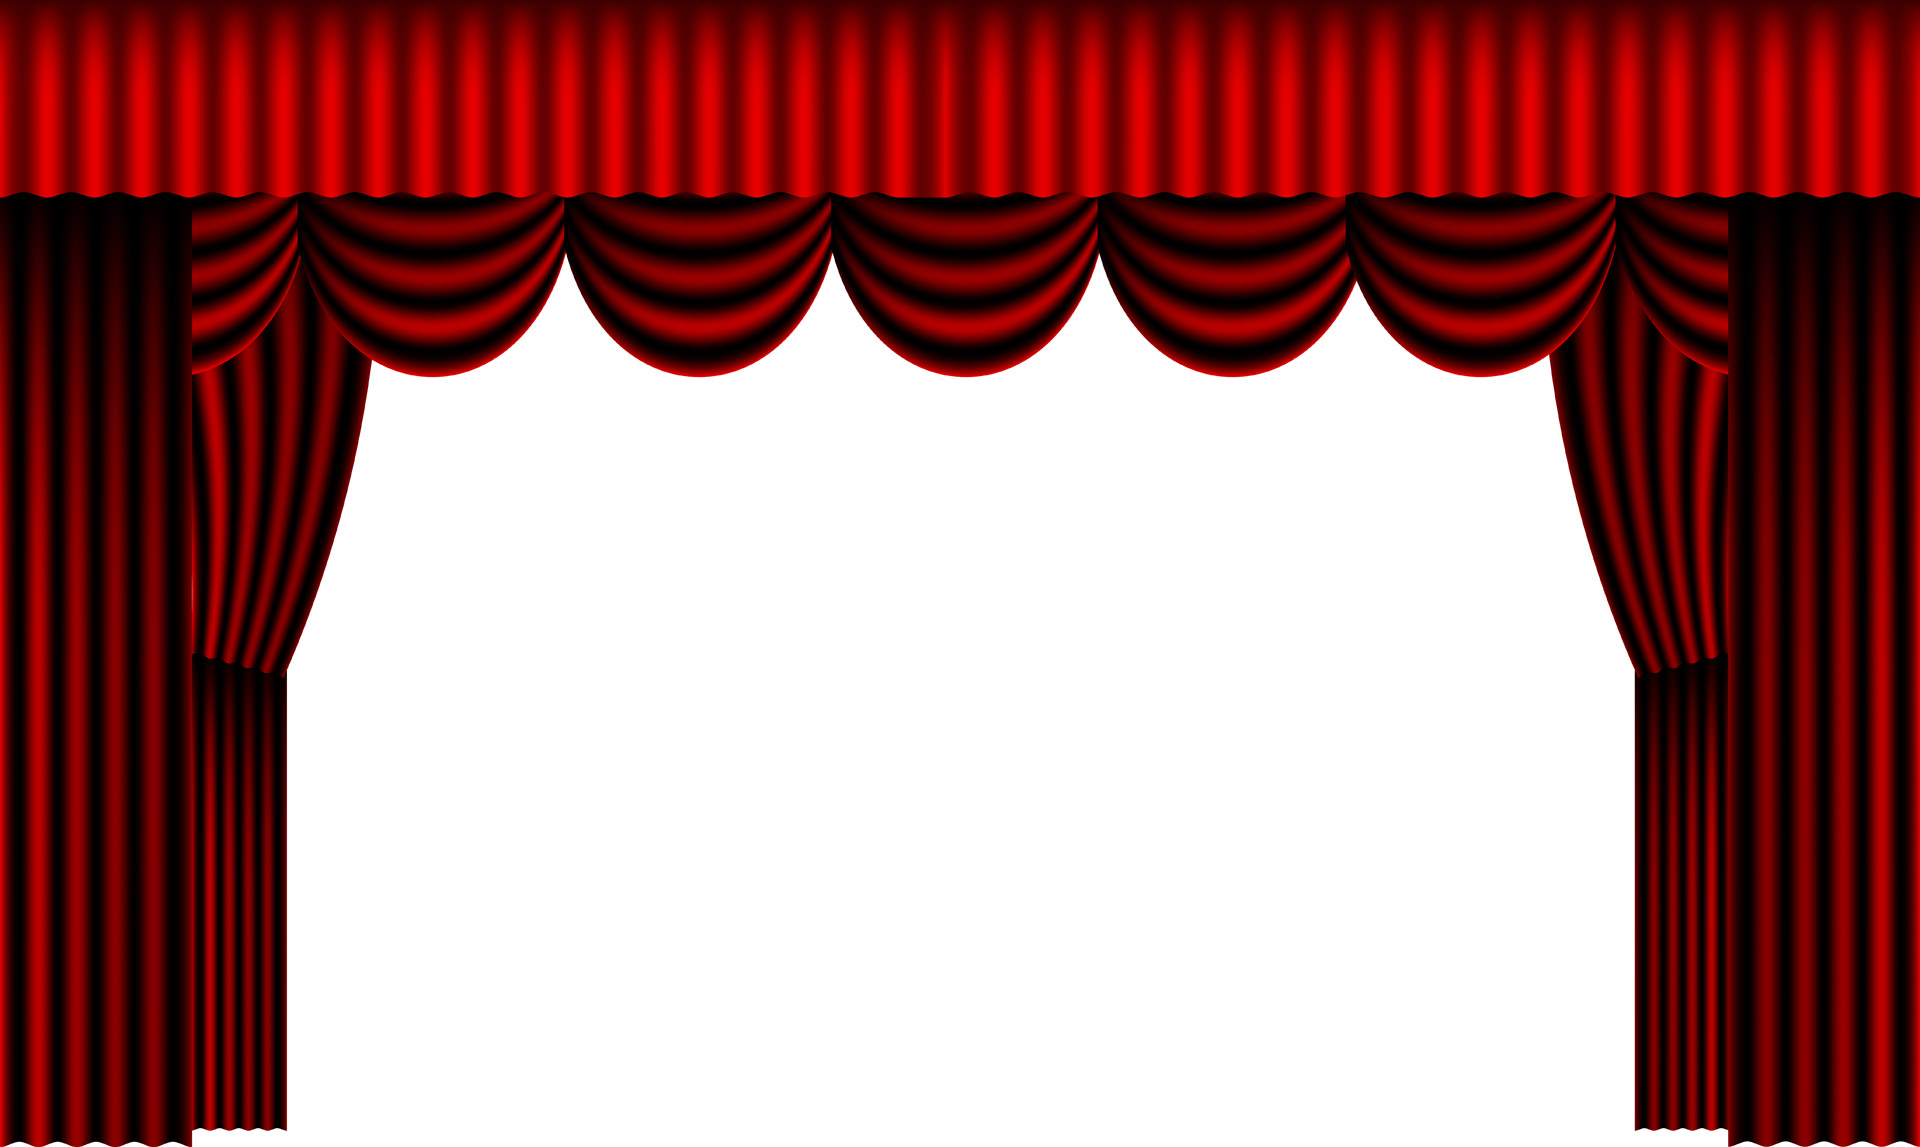 red theater curtain clipart #8